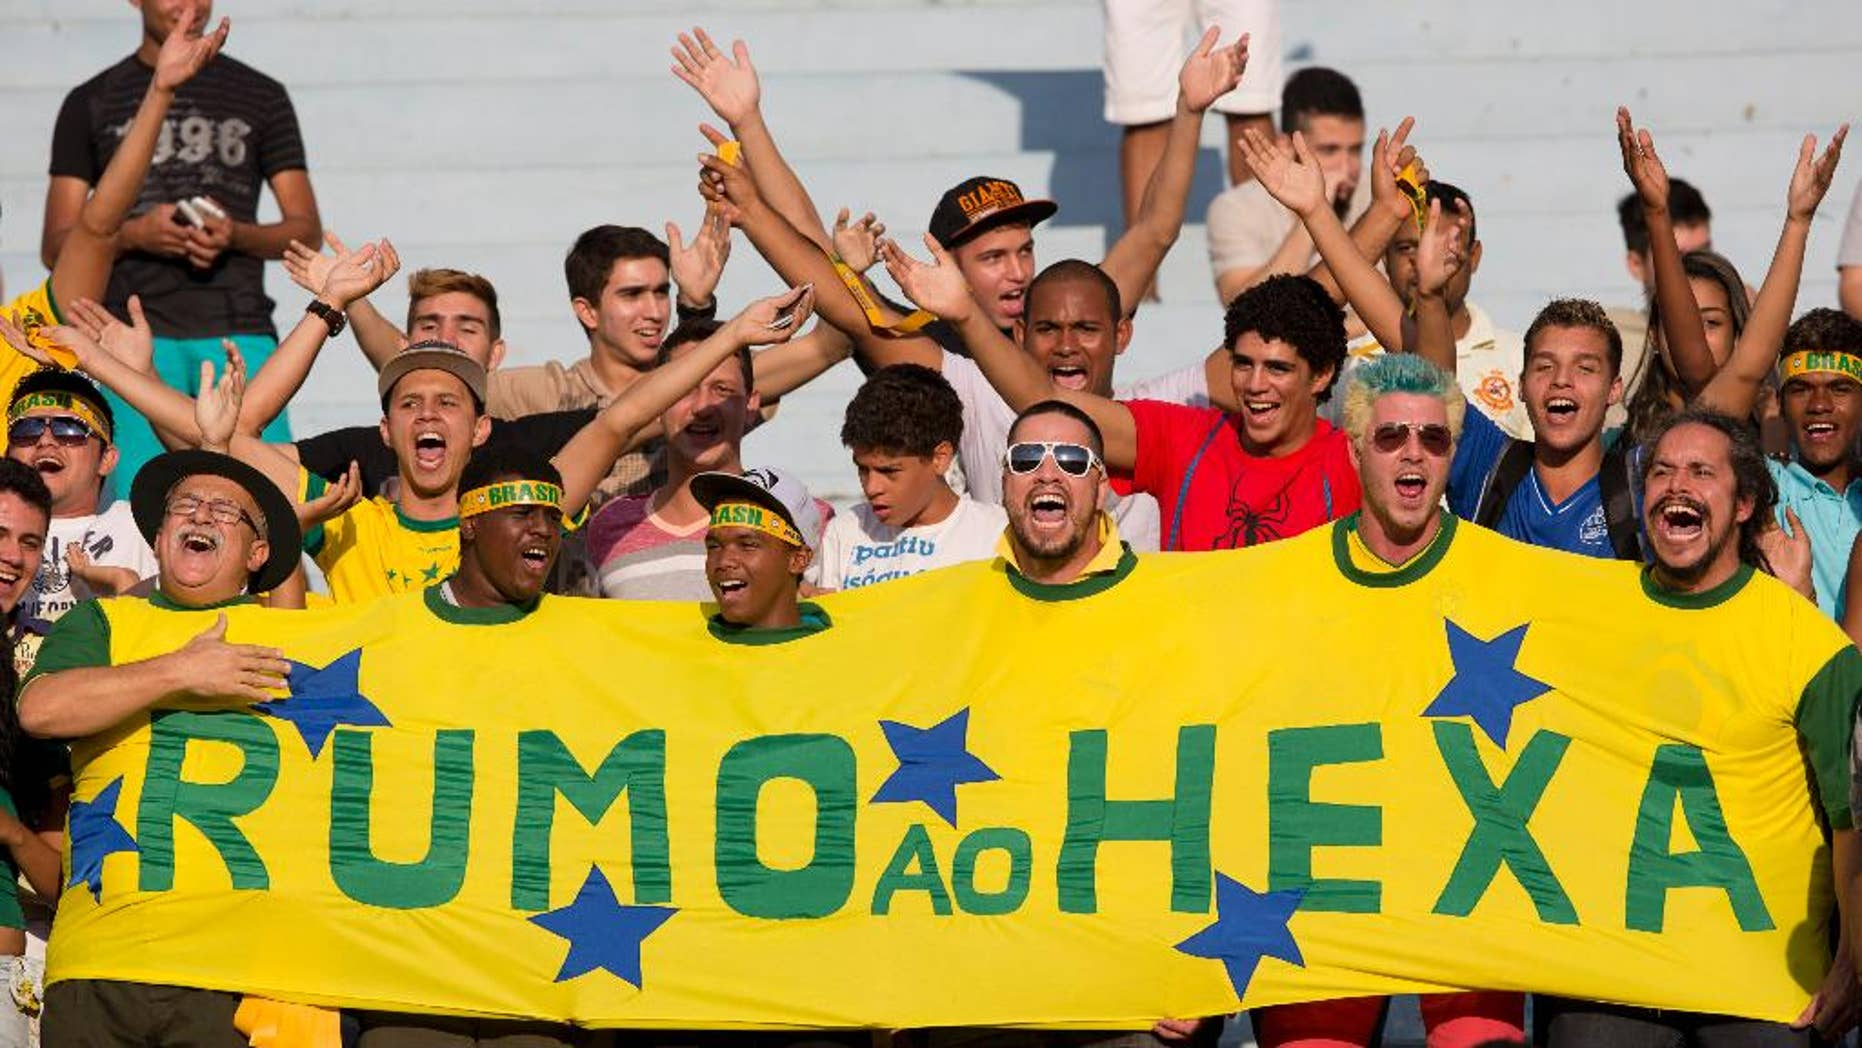 """Brazil's supporters cheer in the stands during a team practice session at the Serra Dourada stadium in Goiania, Brazil, Monday, June 2, 2014. The banner reads in Portuguese """"On its way to the sixth"""", referring to Brazil's five past World Cup titles and hope for a sixth this year. Brazil will face Panama on Tuesday in preparation for the World Cup soccer tournament that starts on 12 June. (AP Photo/Andre Penner)"""